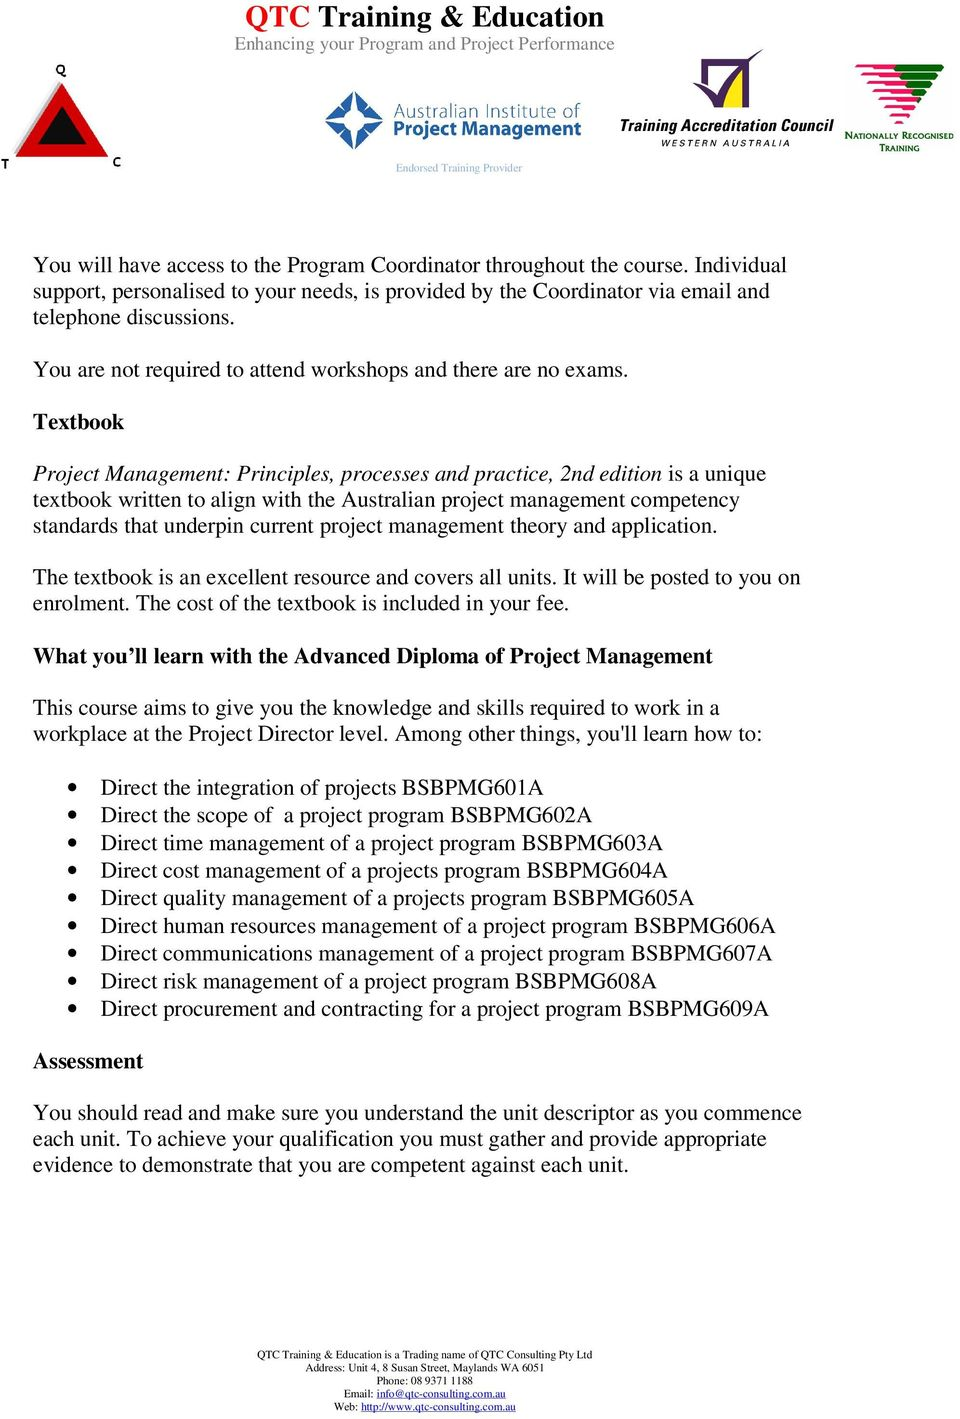 Textbook Project Management: Principles, processes and practice, 2nd edition is a unique textbook written to align with the Australian project management competency standards that underpin current